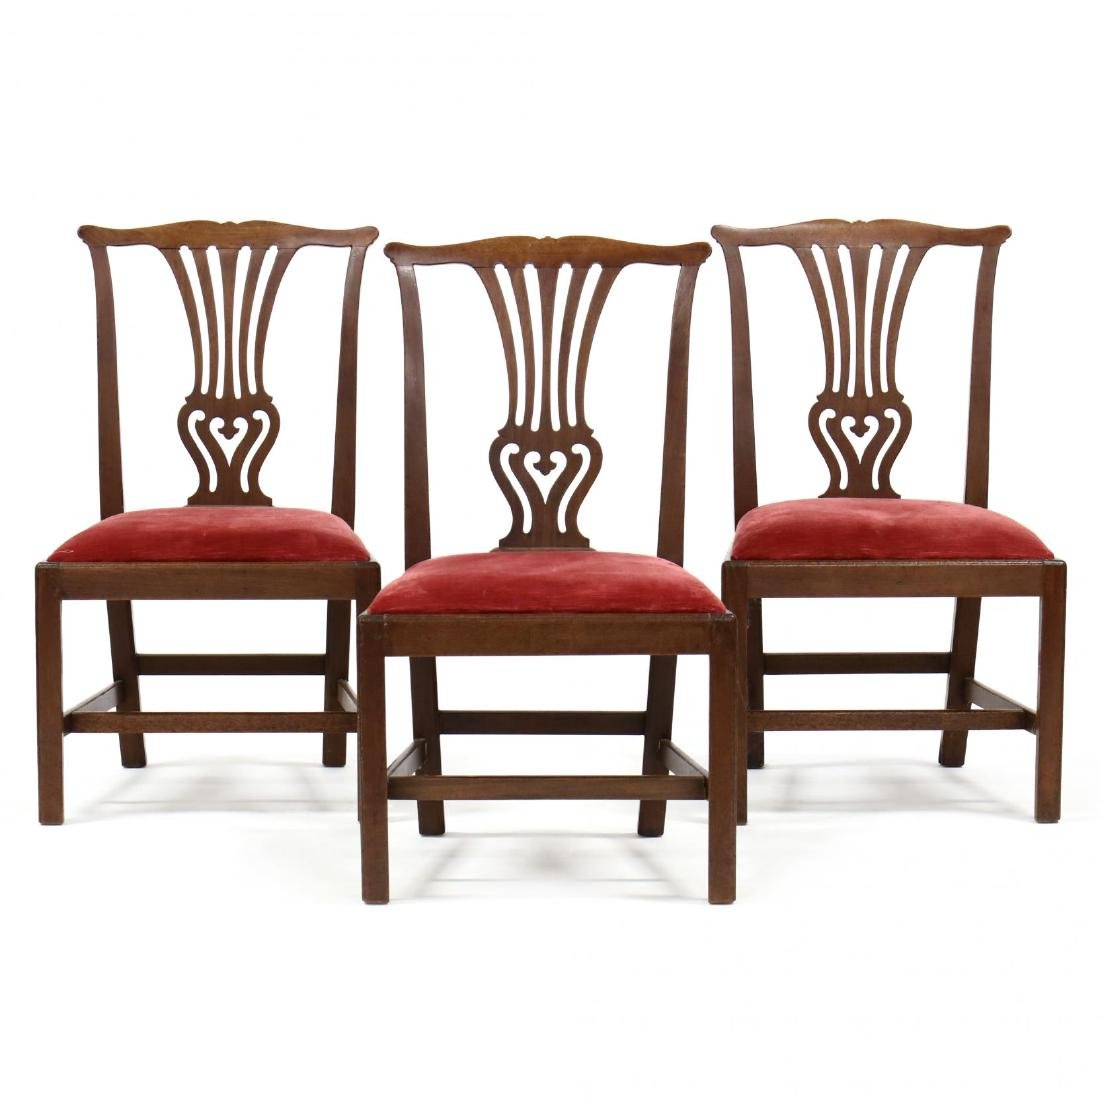 Set of Three Mahogany Chippendale Chairs